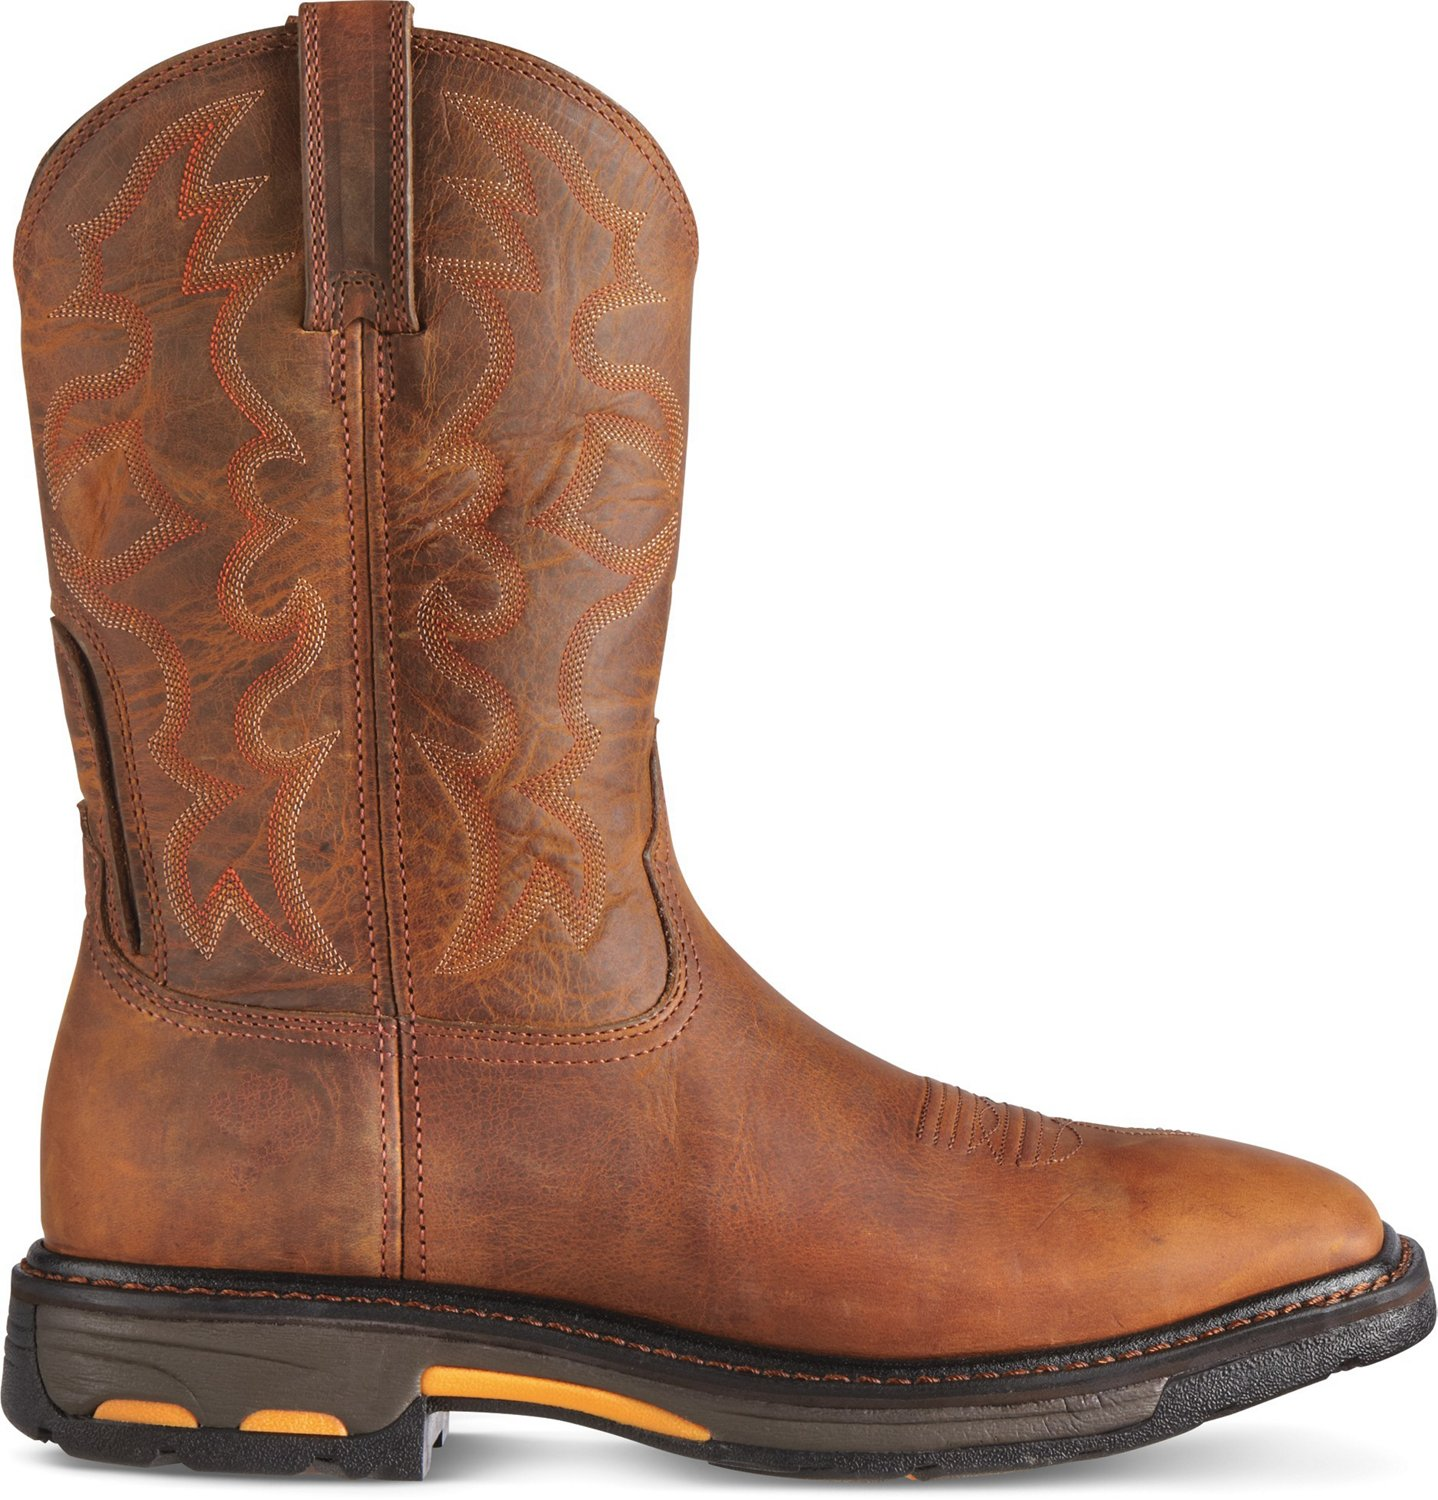 236408bf3c1 Display product reviews for Ariat Men's Workhog EH Steel Toe Western  Wellington Work Boots